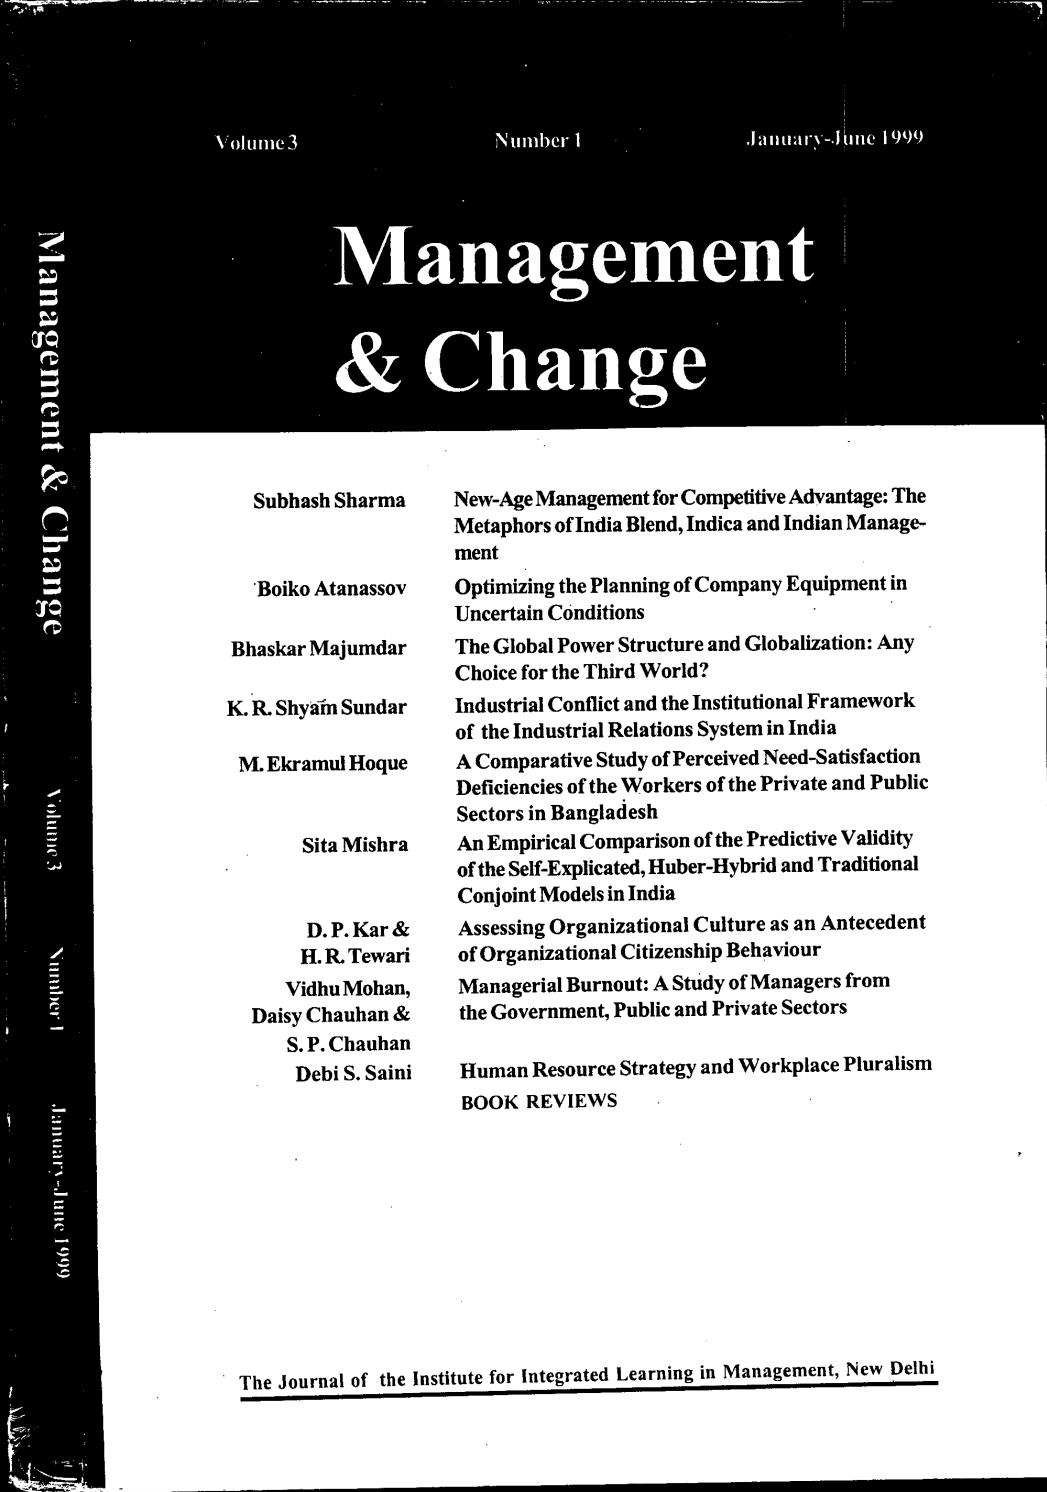 Management & Change by IILM Institute for Higher Education